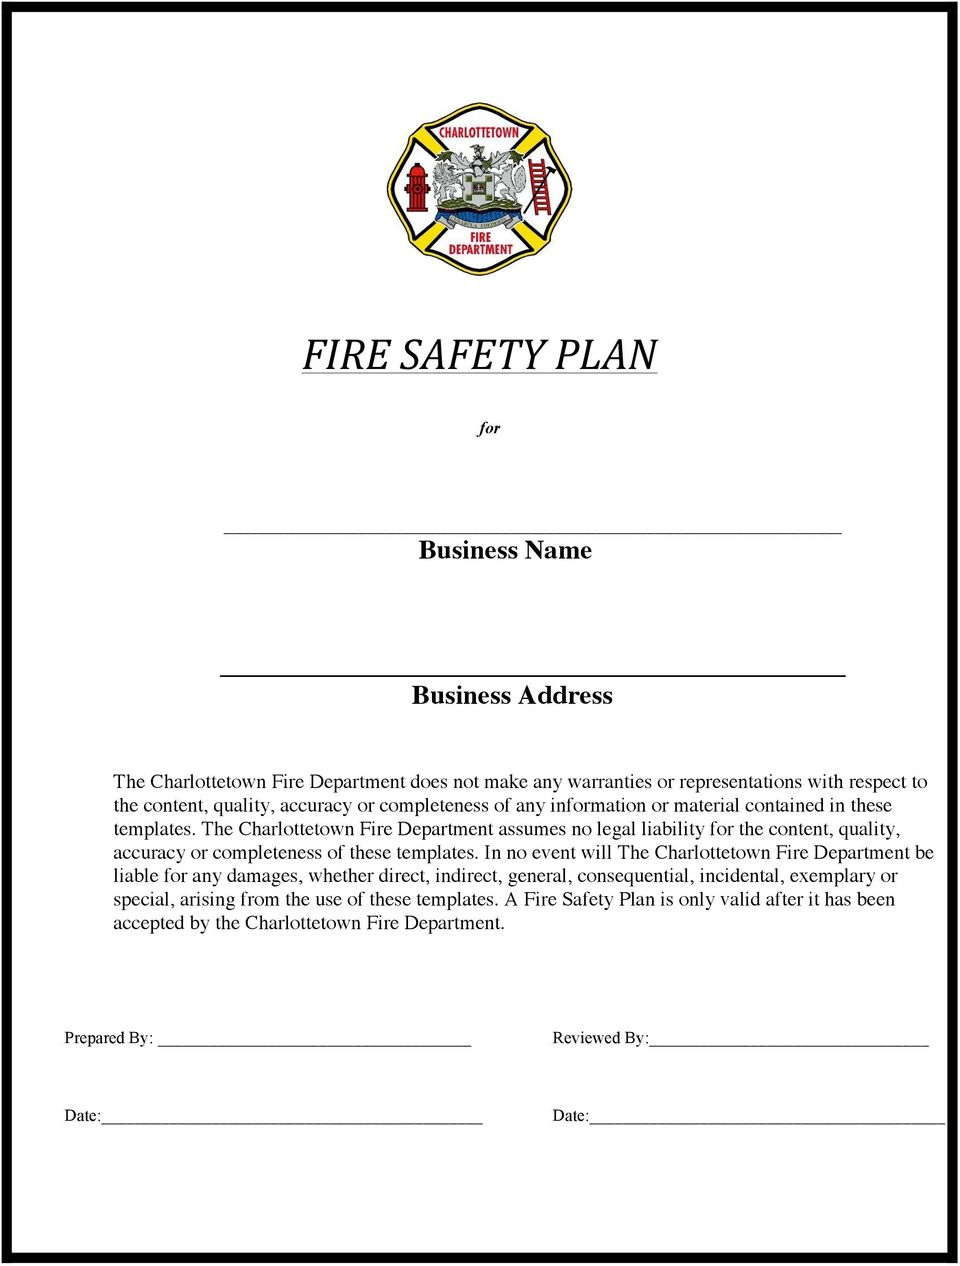 The Charlottetown Fire Department assumes no legal liability for the content, quality, accuracy or completeness of these templates.